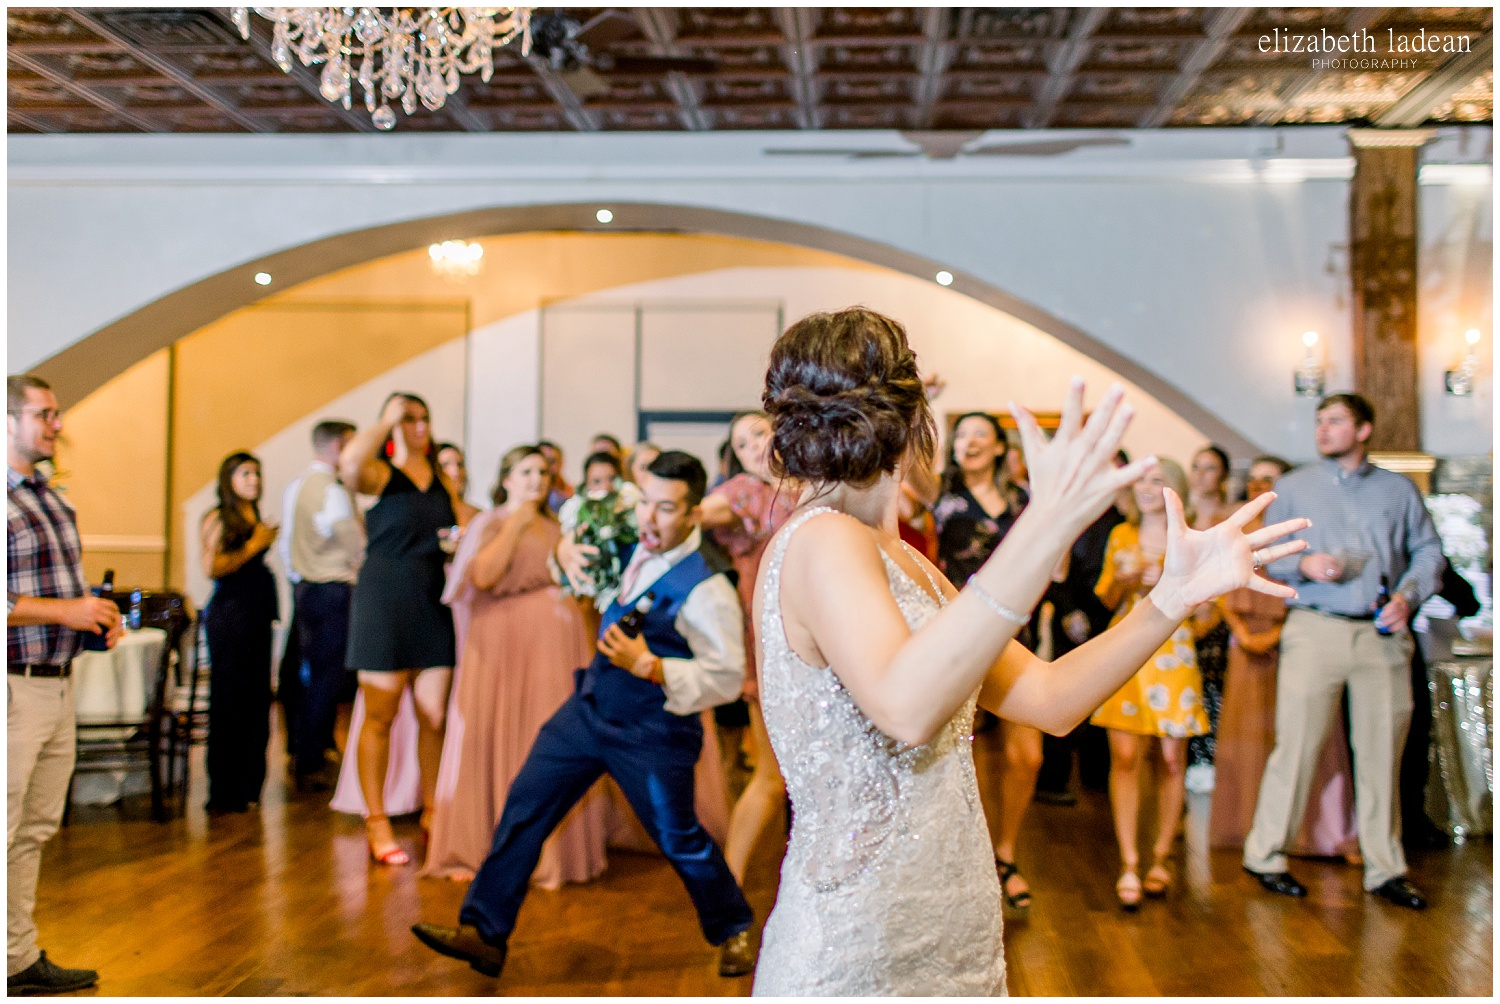 -behind-the-scenes-of-a-wedding-photographer-2018-elizabeth-ladean-photography-photo_3509.jpg